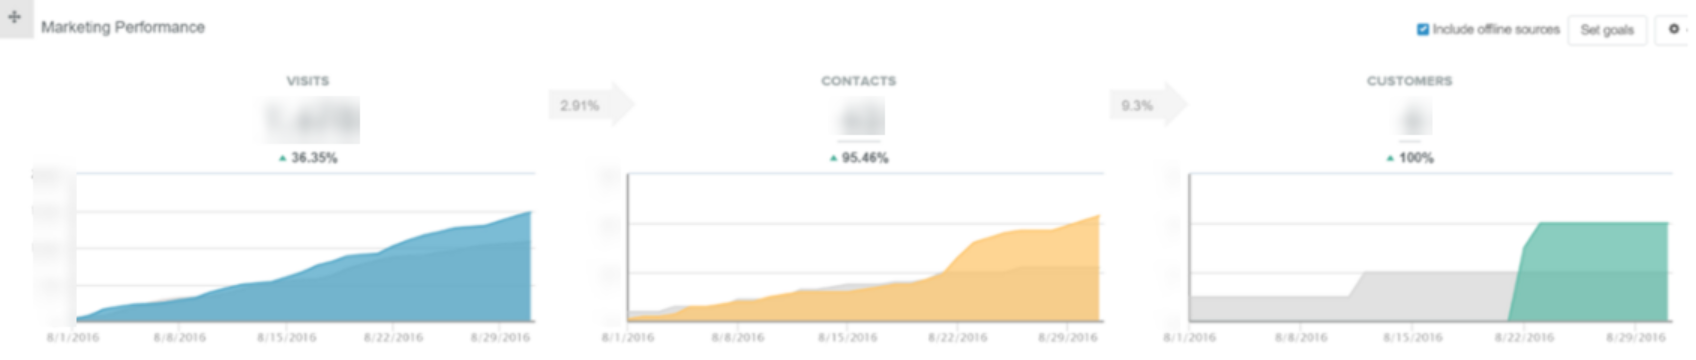 August_Marketing_Dashboard.png